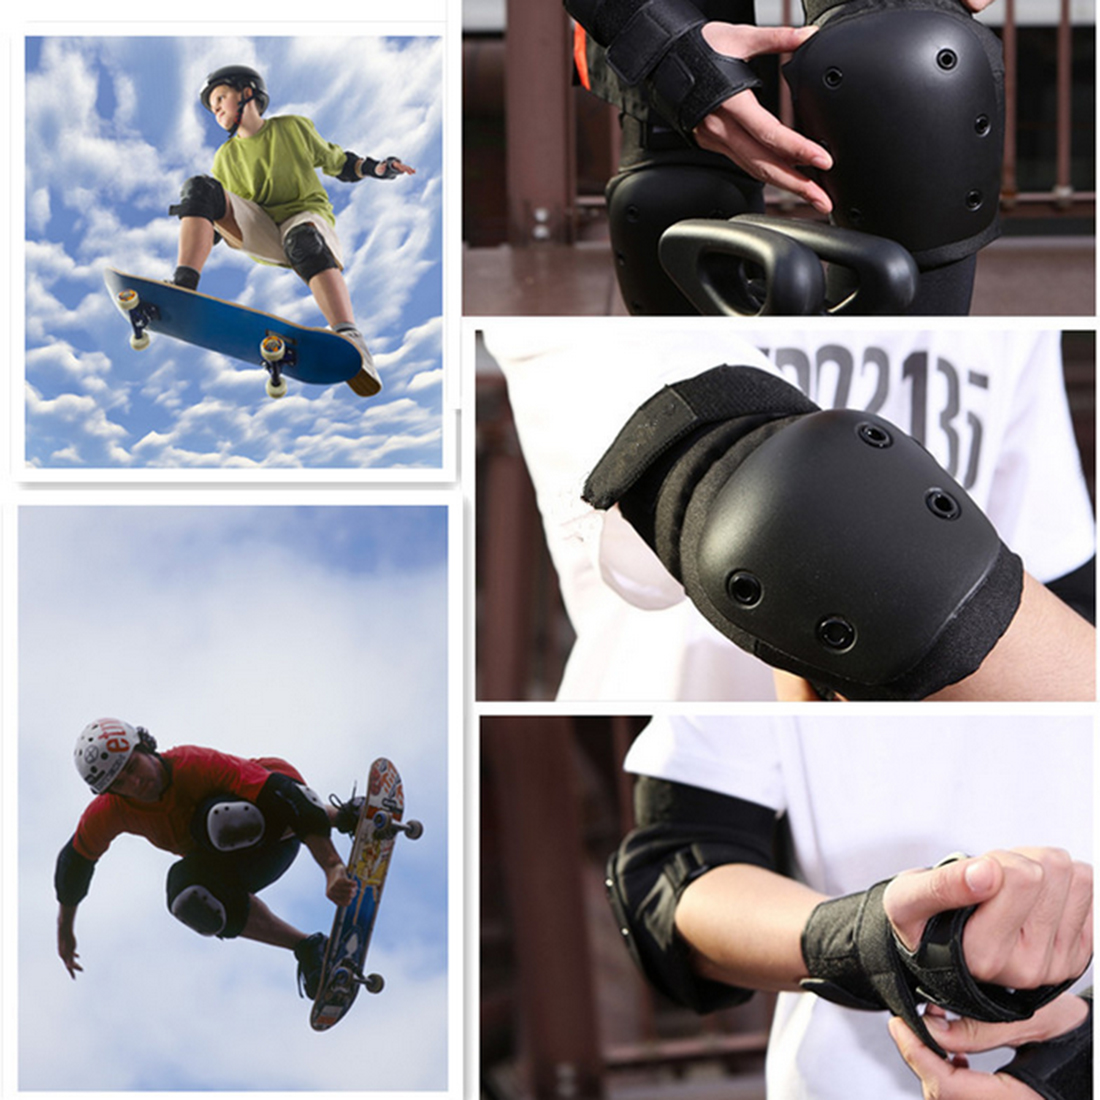 iguardor 7Pcs Set Sport Safety Protective Gear Elbow Wrist Knee Pads and Helmet Guard for Kids Adult Skateboard Riding Equipment smith safety gear leopard elbow pads